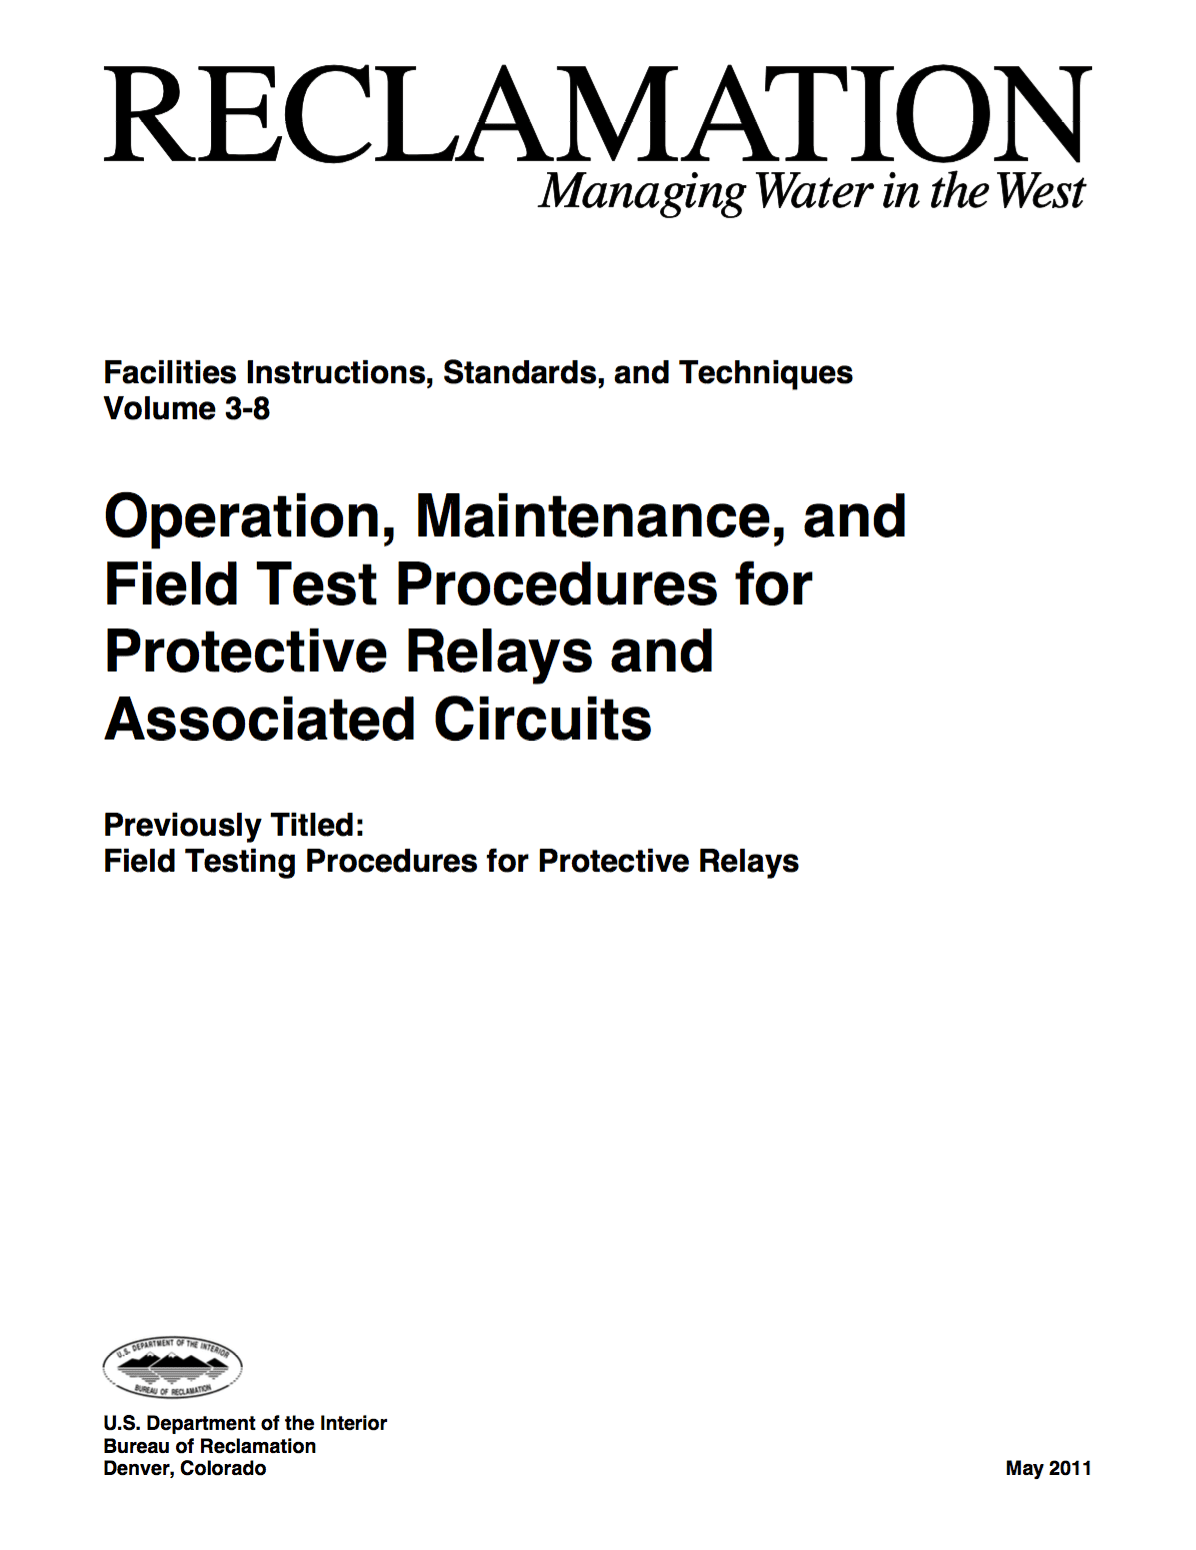 Operation, maintenance, and field test procedures for protective relays and associated circuits - U.S. Department of the Interior Bureau of Reclamation Denver, Colorado